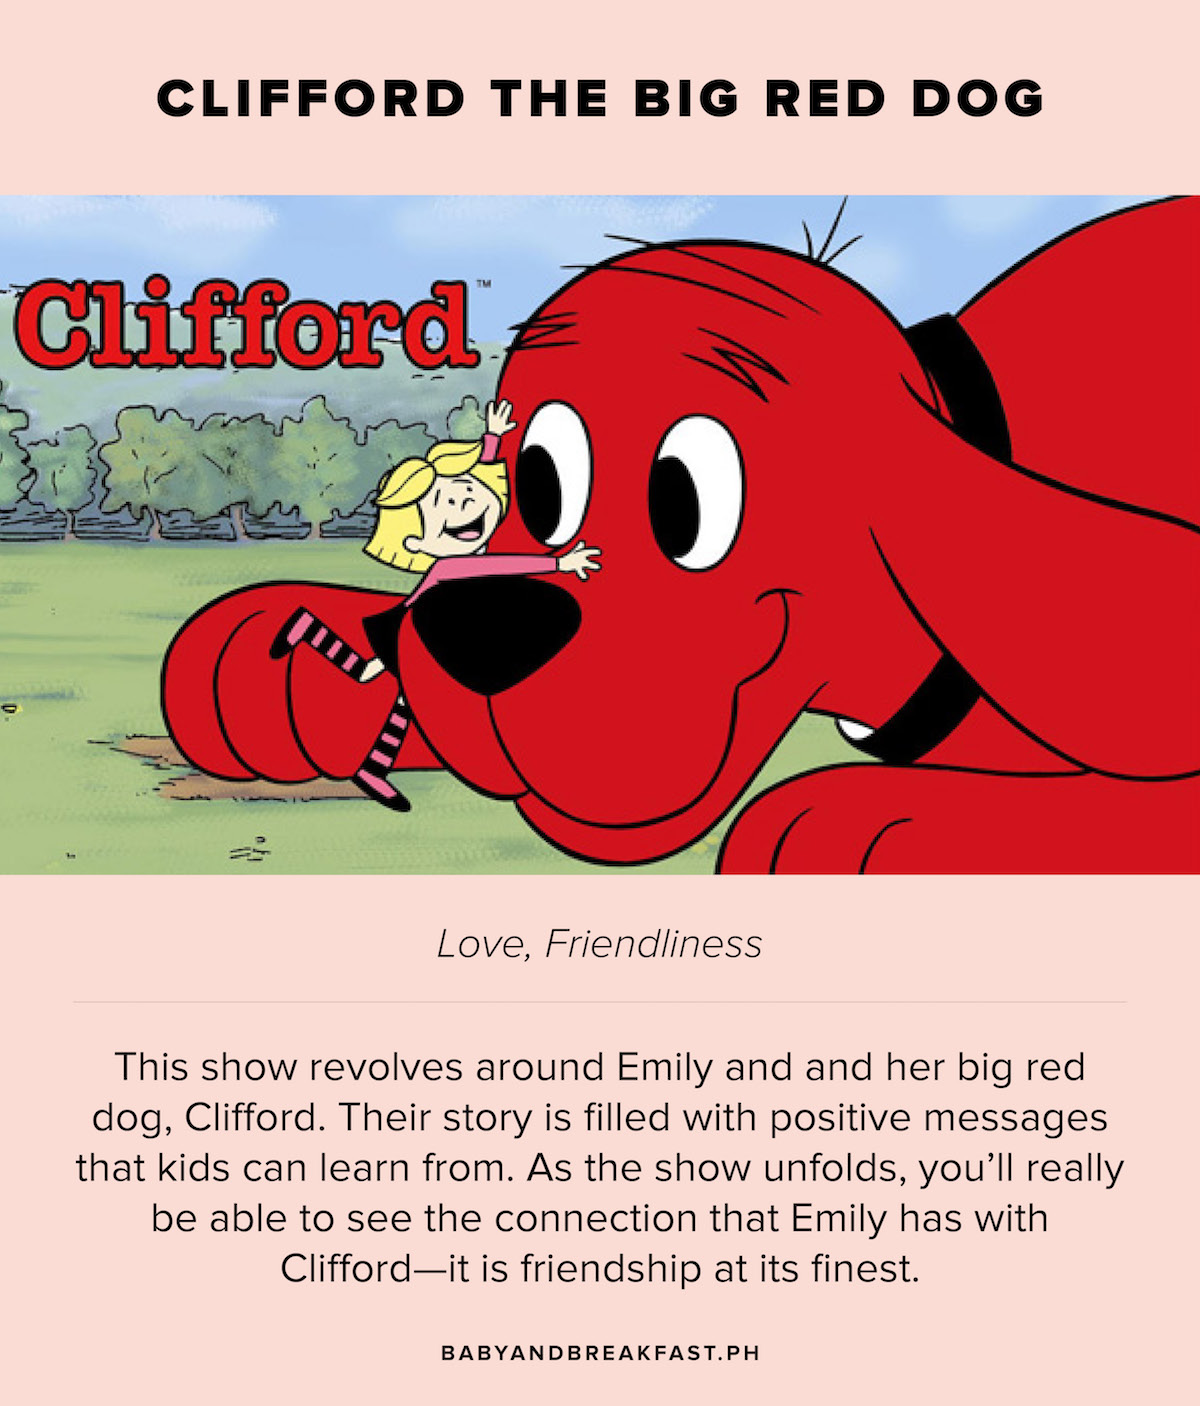 Clifford the Big Red Dog Love, Friendliness This show revolves around Emily and her big red dog, Clifford. Their story is filled with positive messages that kids can learn from. As the show unfolds, you'll really be able to see the connection Emily has with Clifford--it is friendship at its finest.